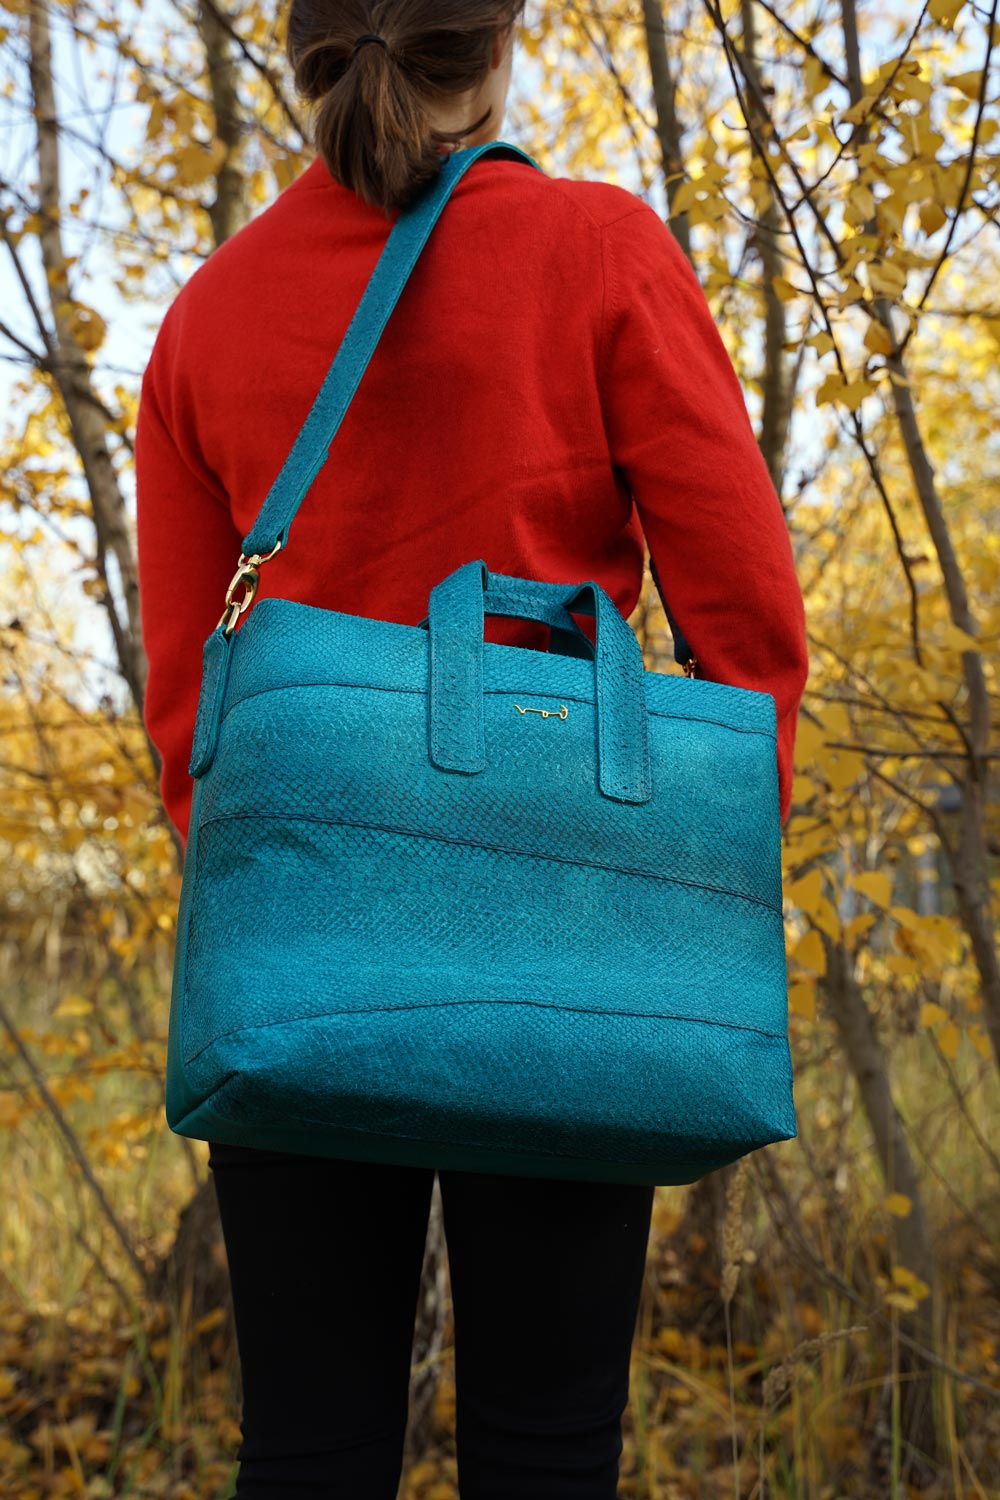 Big handbag made from salmon leather